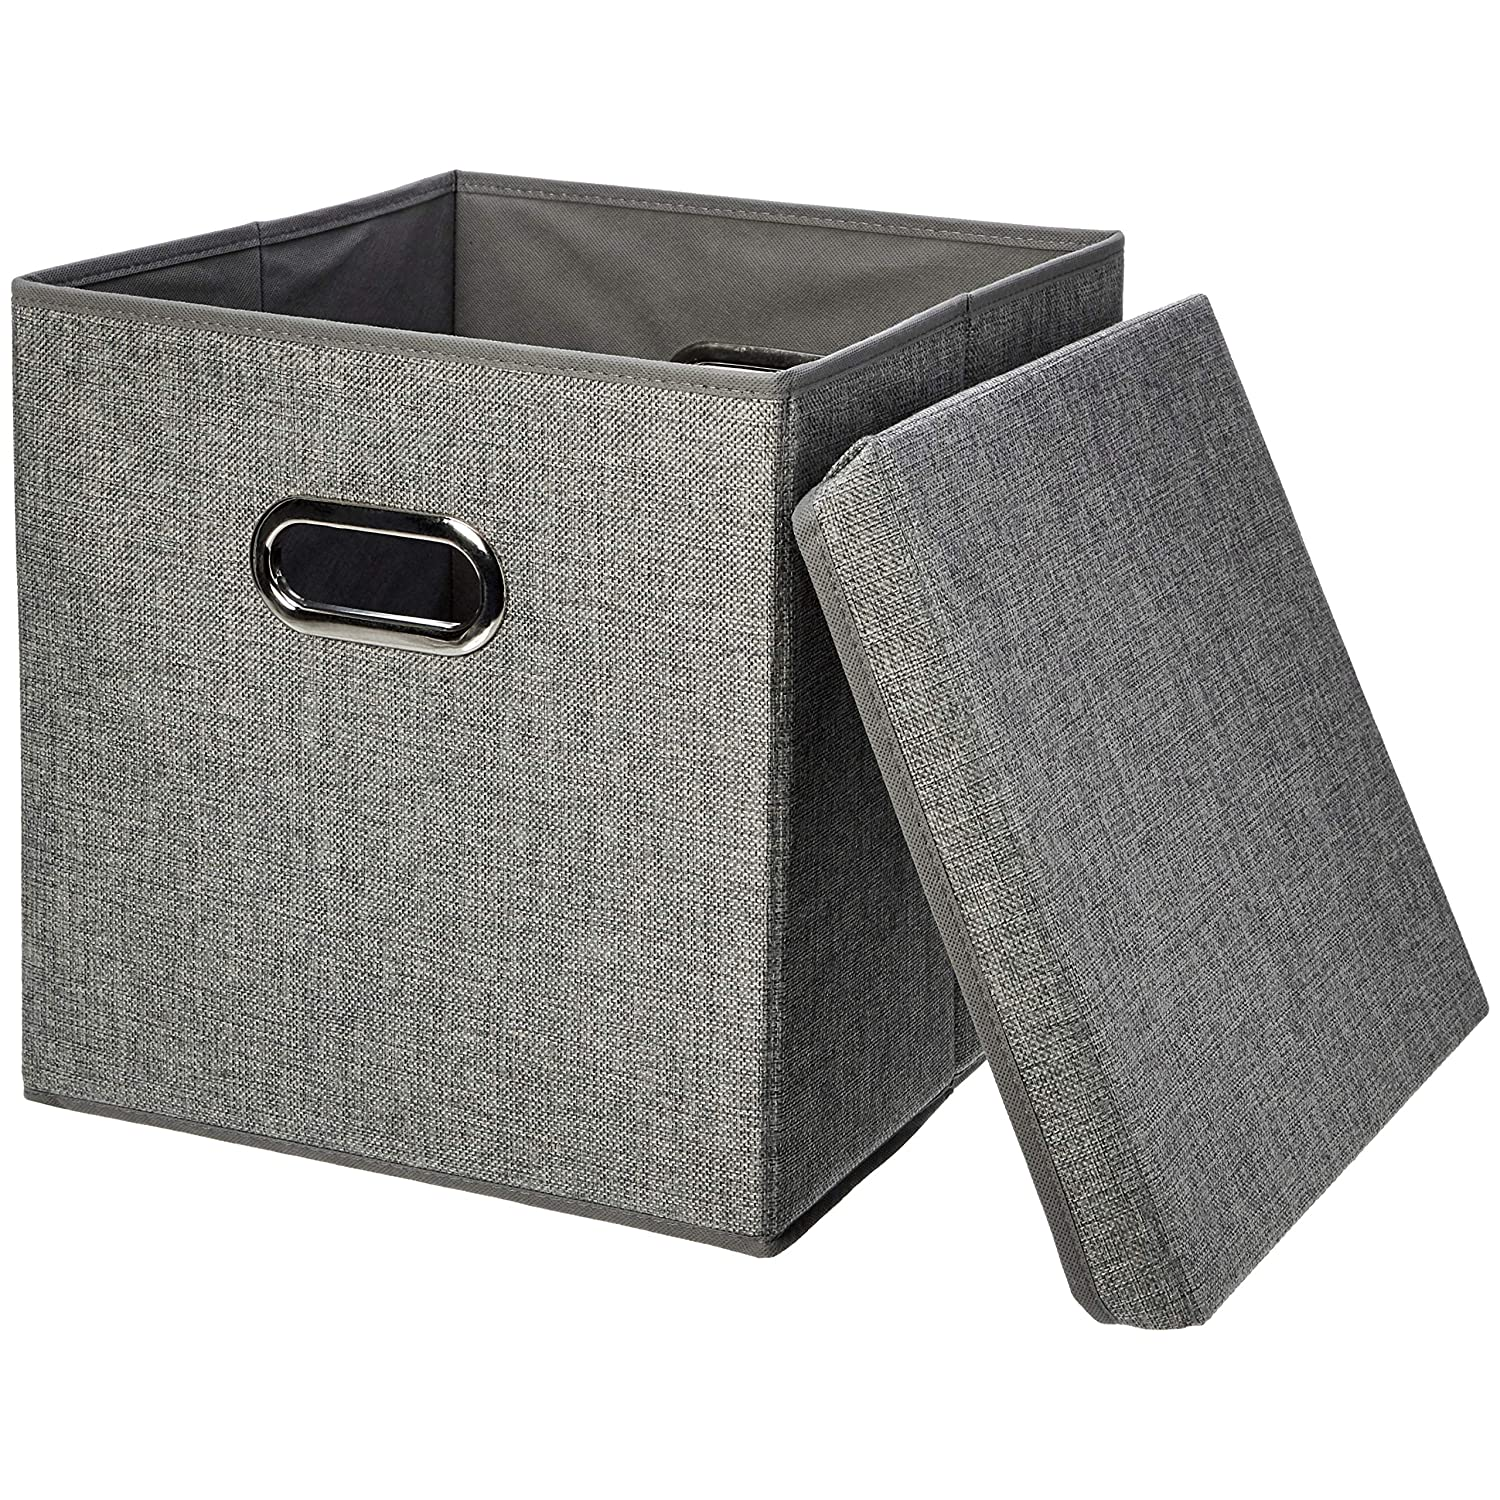 AmazonBasics Foldable Burlap Cloth Cube Storage Bin with Lid